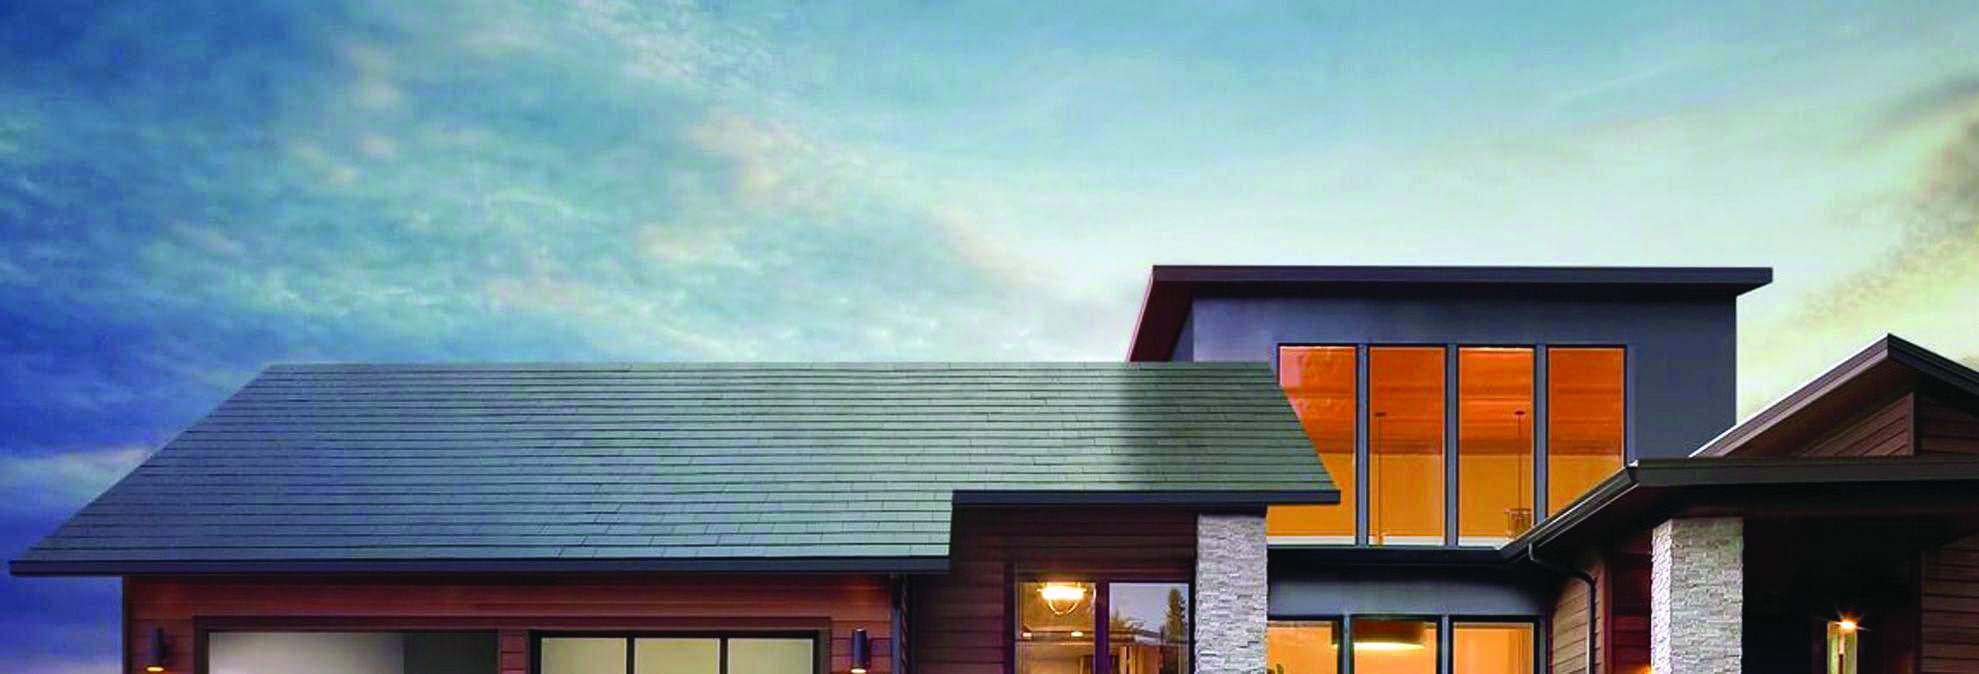 Conveniences And Drawbacks Of Solar Roof Tiles That You Need To Understand About Solar Roof Tiles Solar Roof Solar Shingles